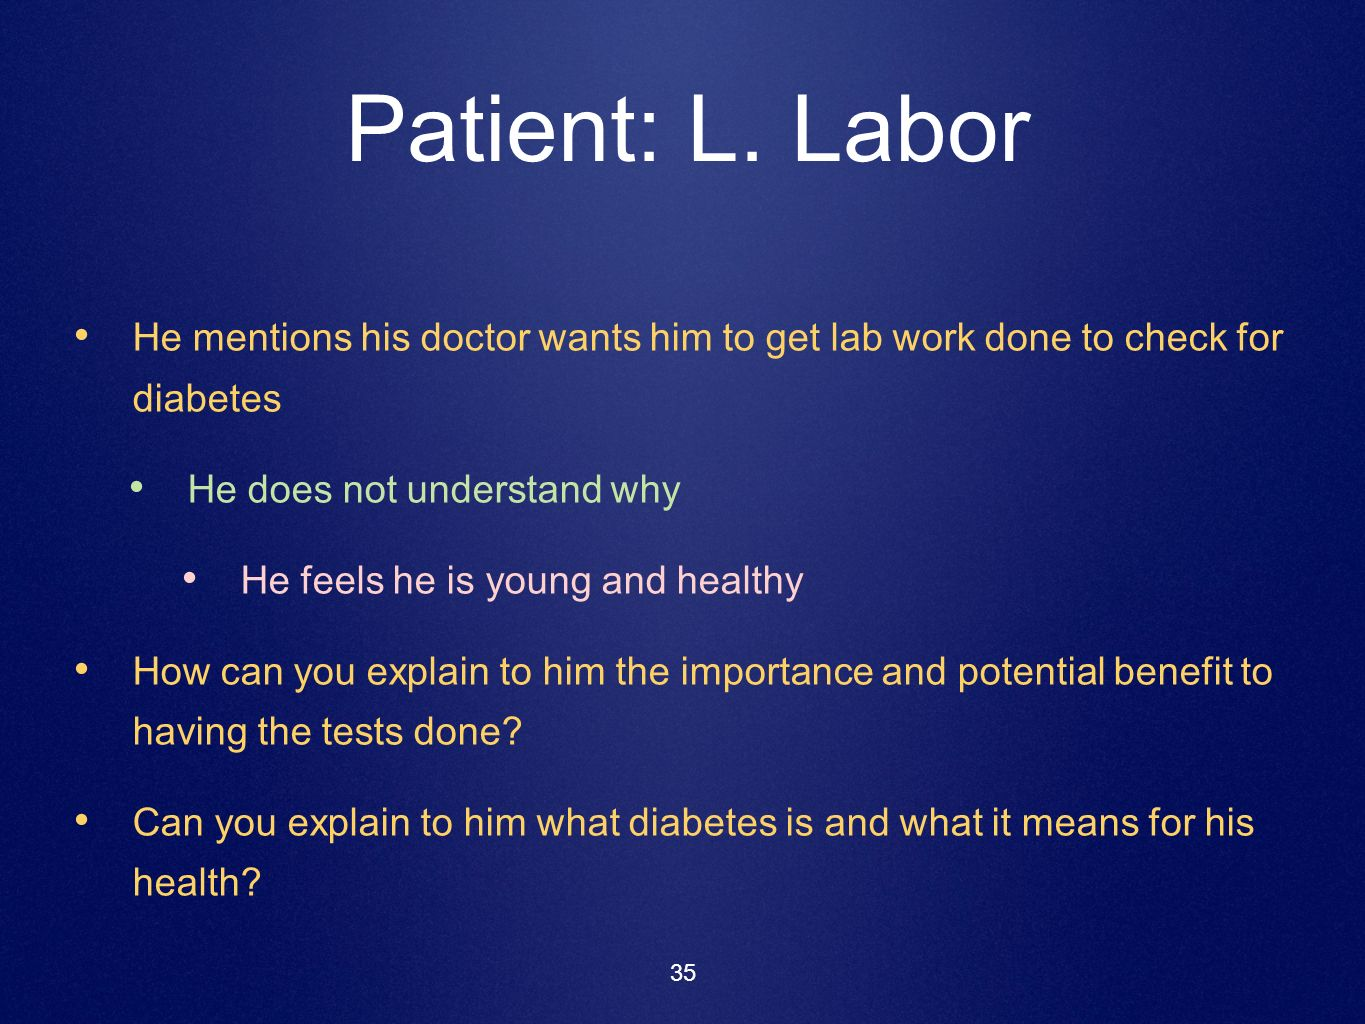 Patient: L. Labor He mentions his doctor wants him to get lab work done to check for diabetes. He does not understand why.